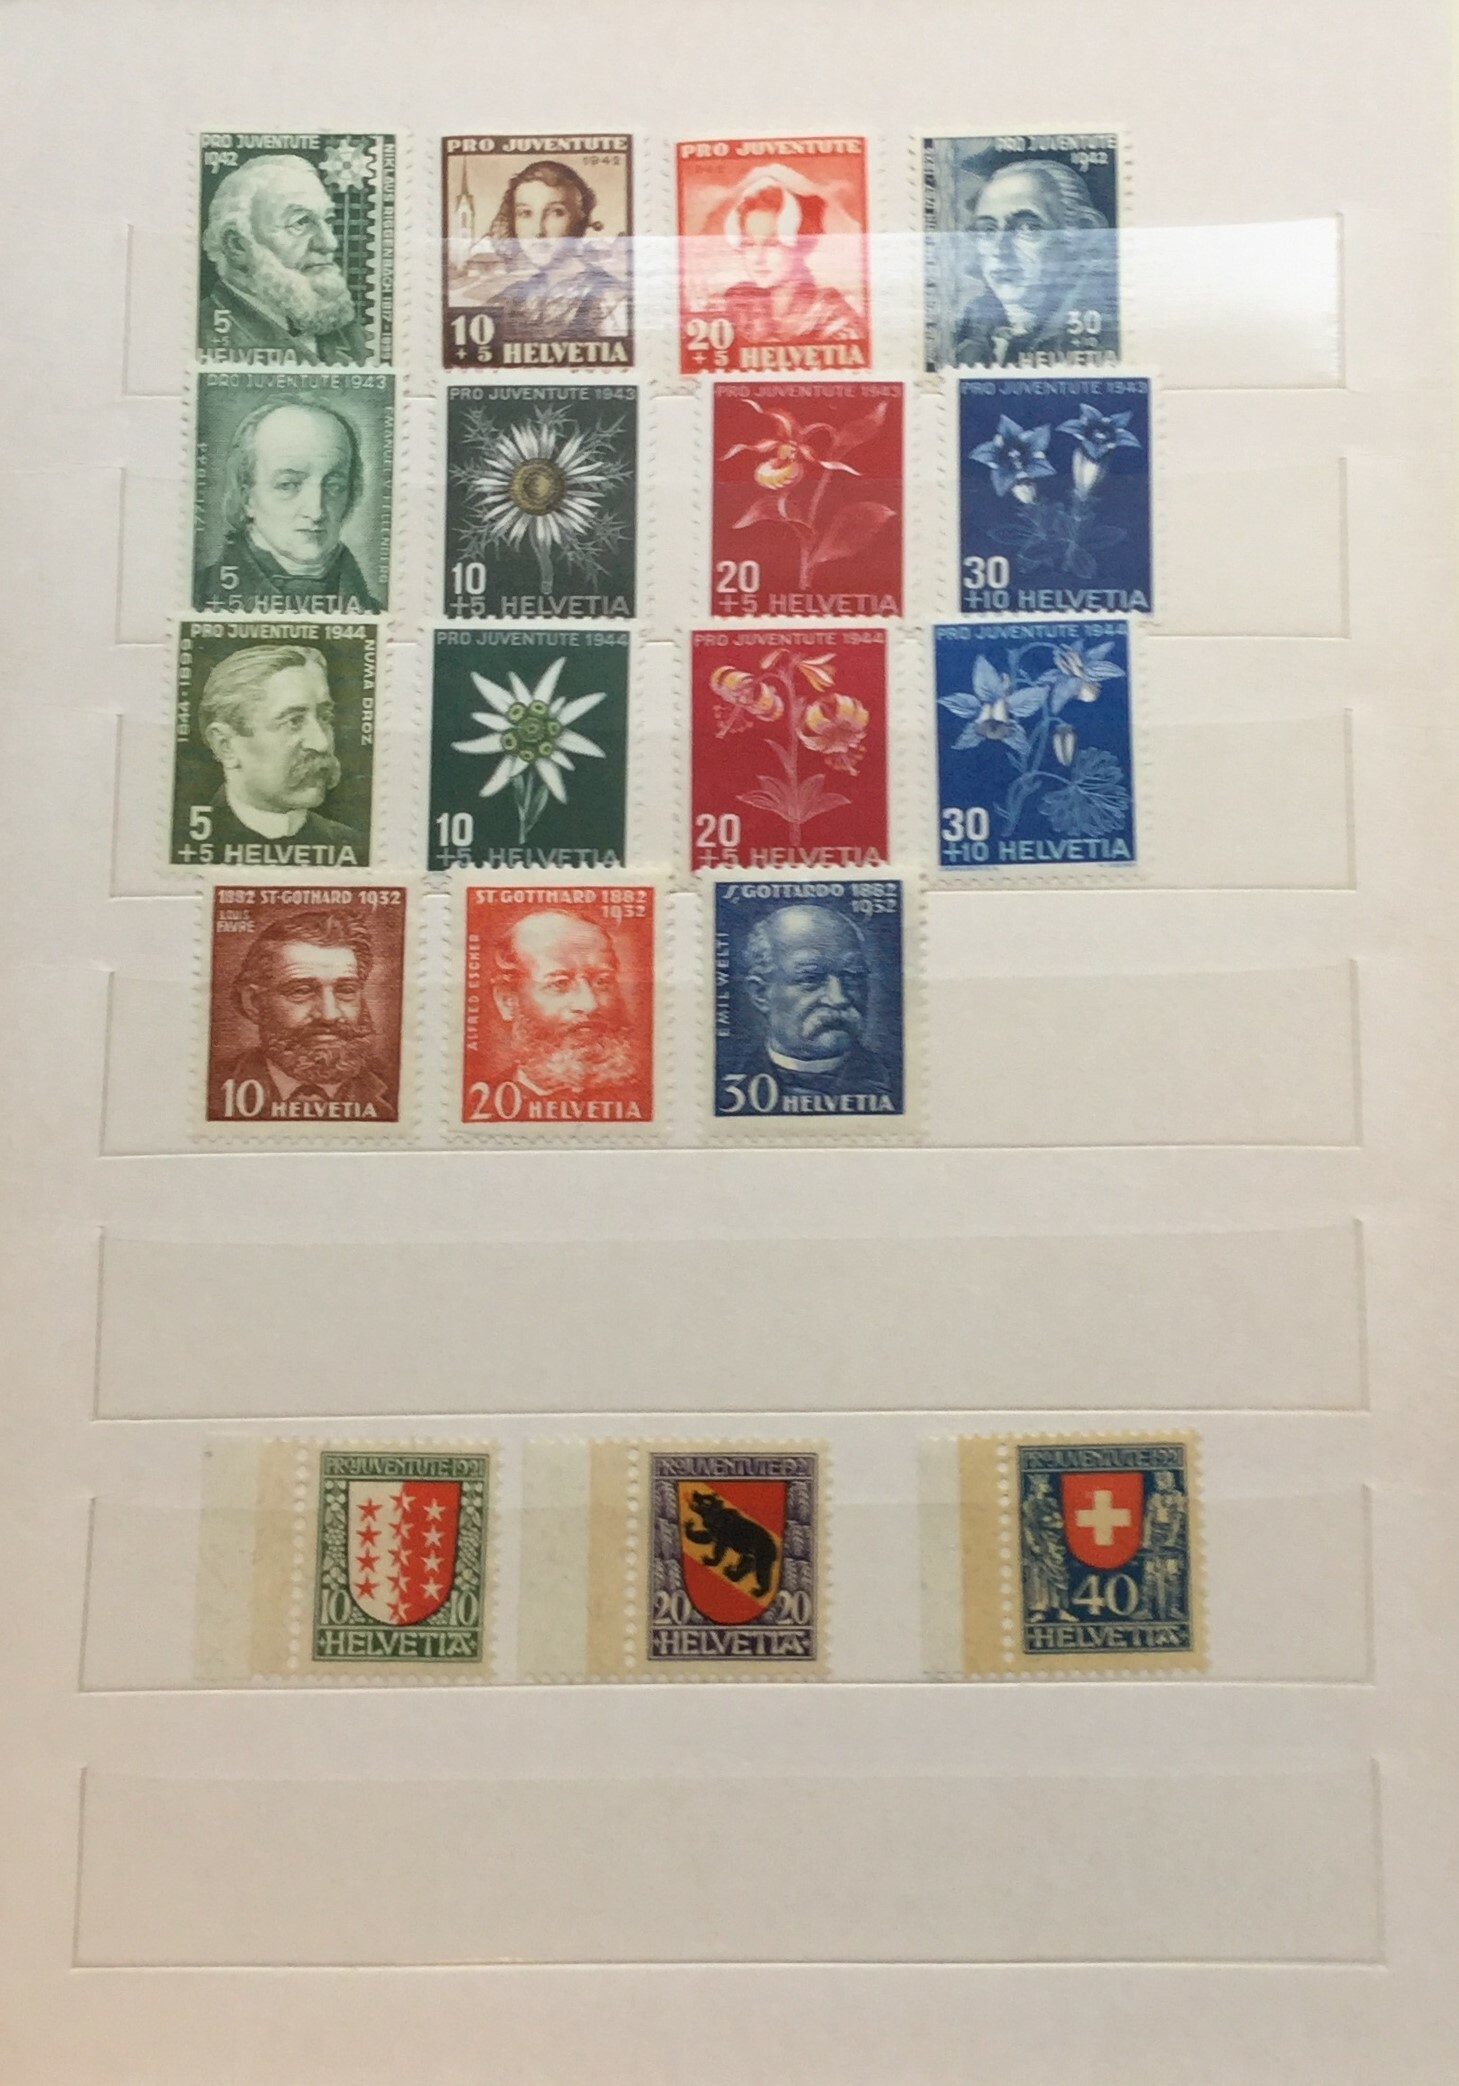 Lot 2569 - PAESI EUROPEI Lots & Collections -  Ponte Auction House Stamps Auction 505